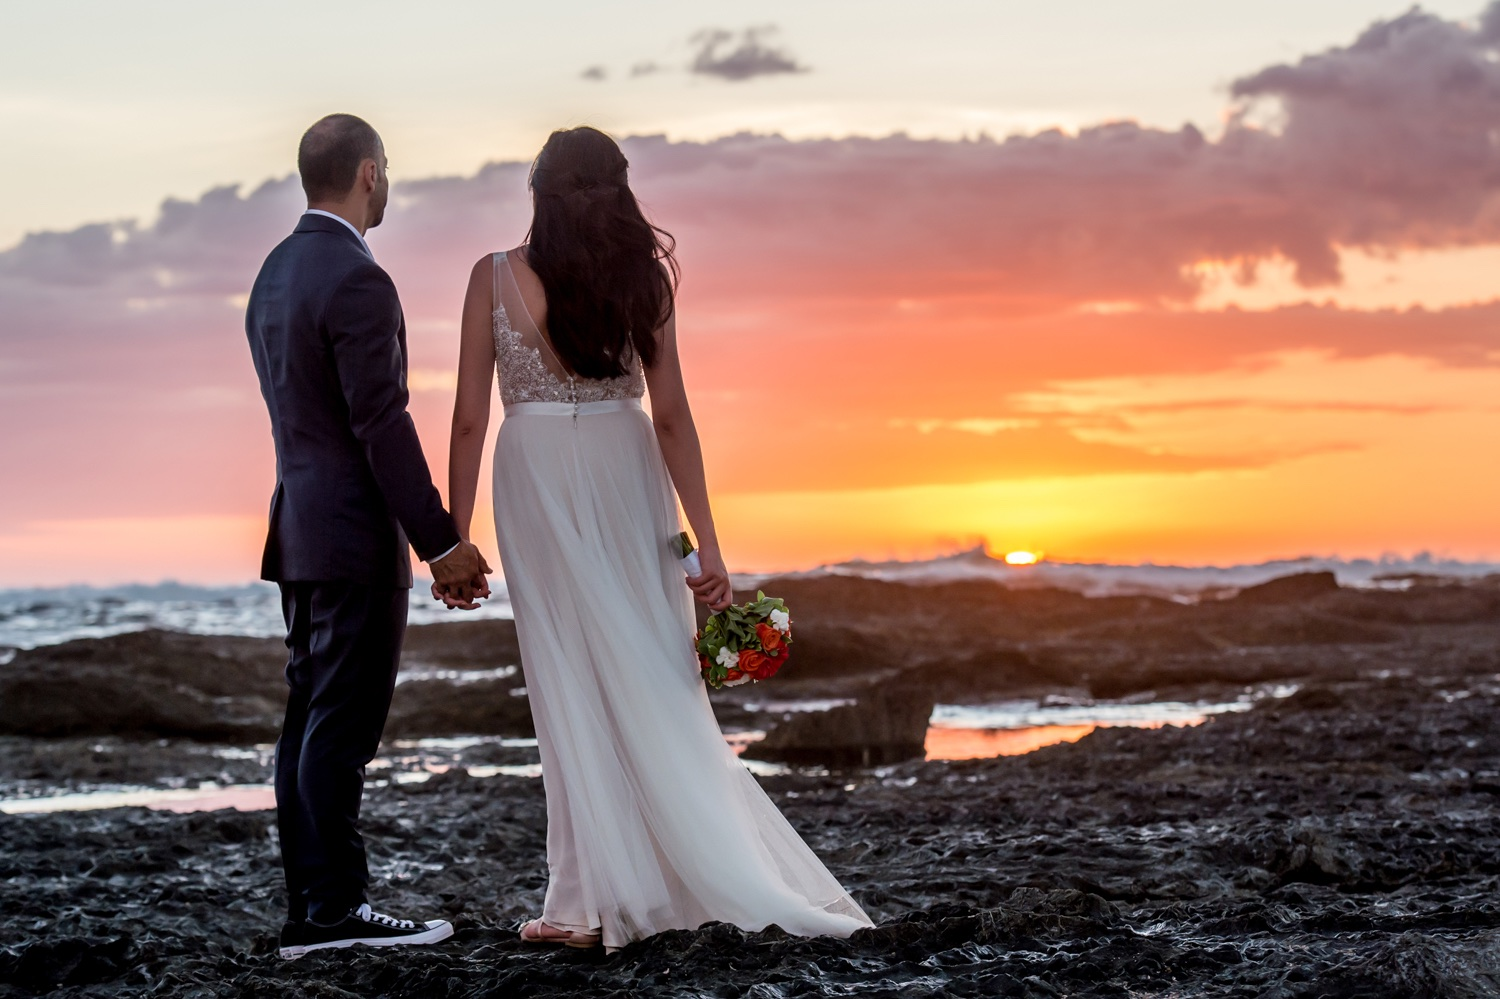 Two Adventurous Souls | Maine and Costa Rica Wedding Photographers